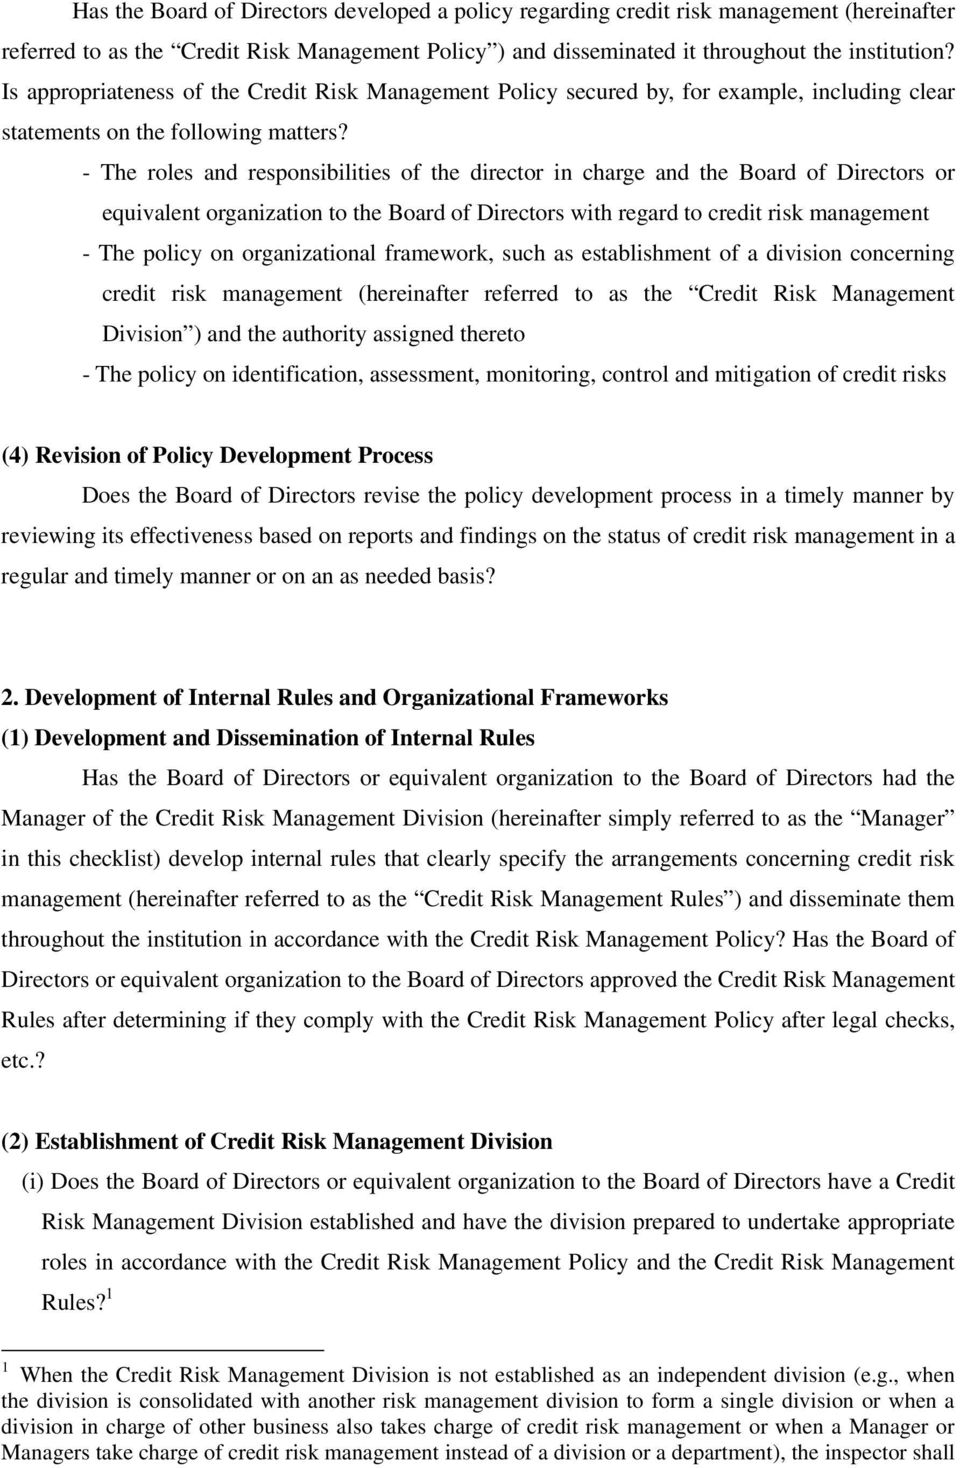 - The roles and responsibilities of the director in charge and the Board of Directors or equivalent organization to the Board of Directors with regard to credit risk management - The policy on